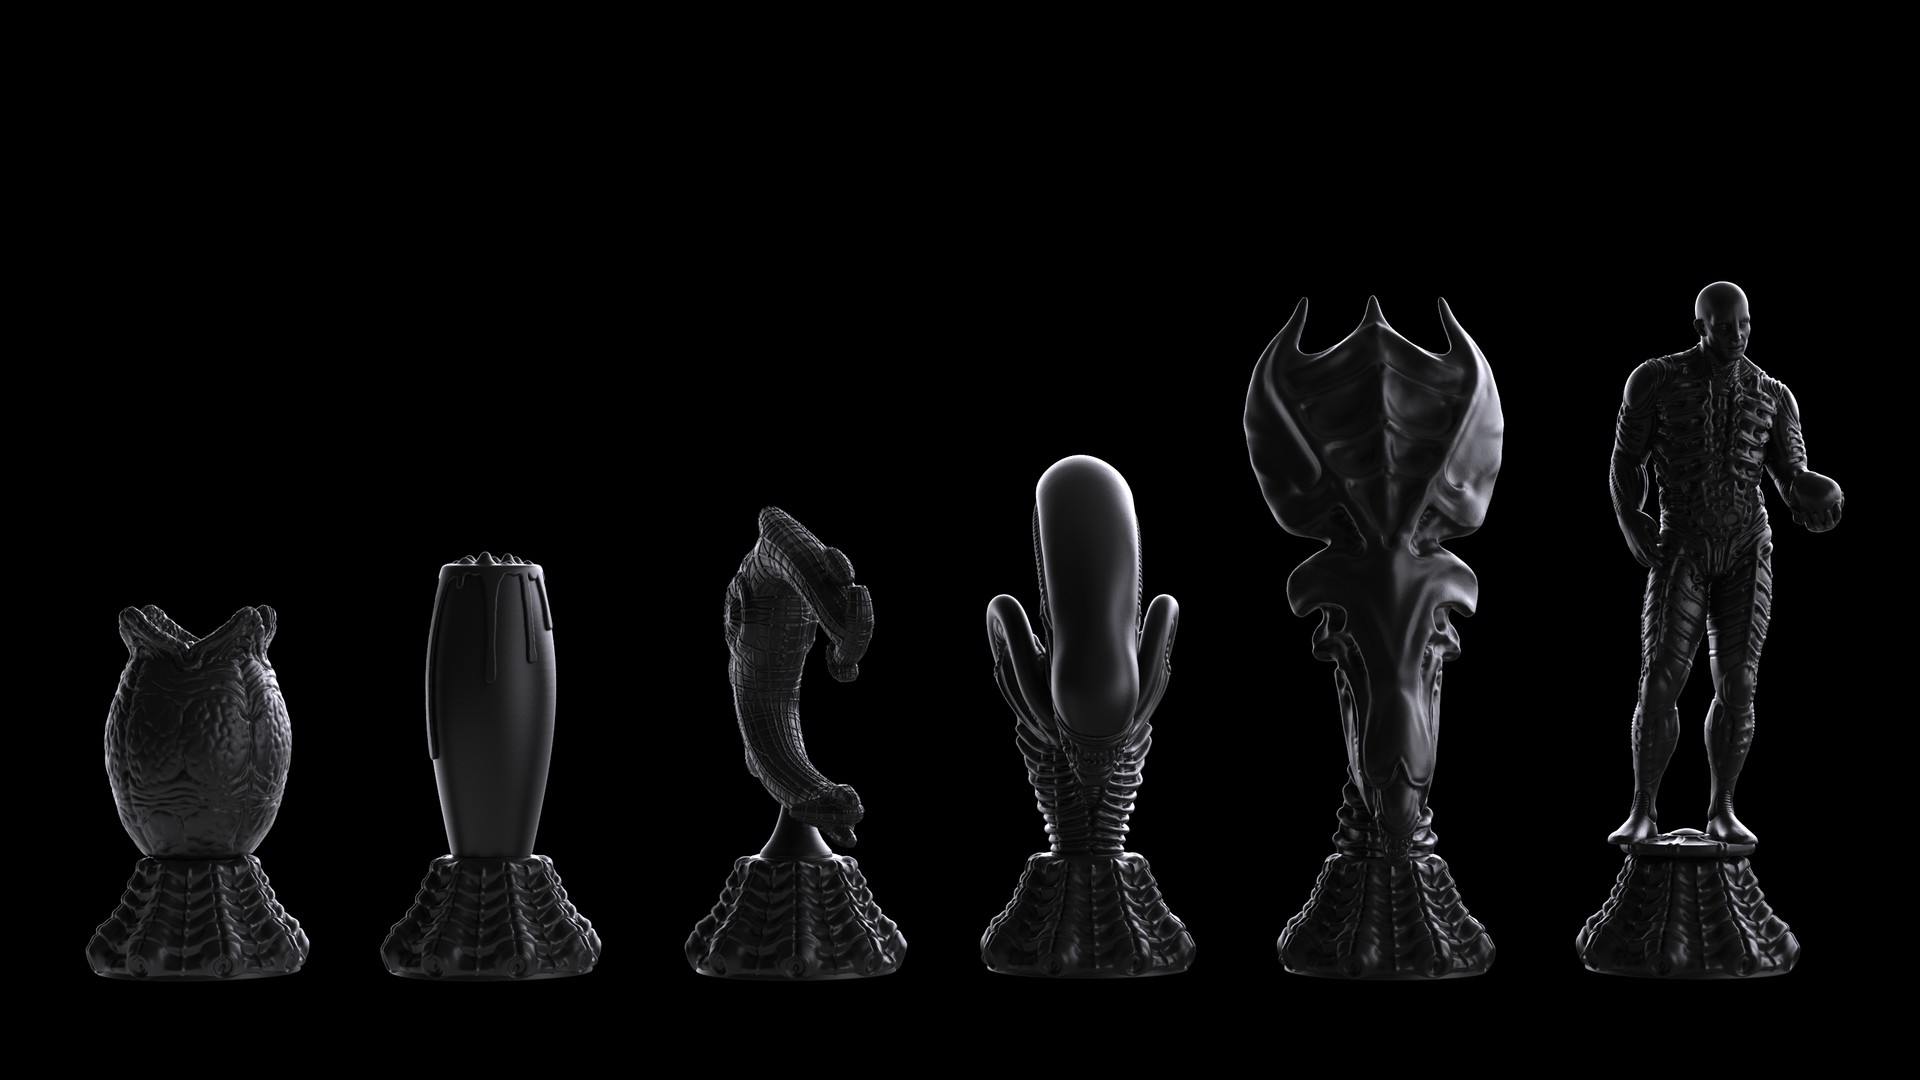 Ken calvert alien chess renders 1054